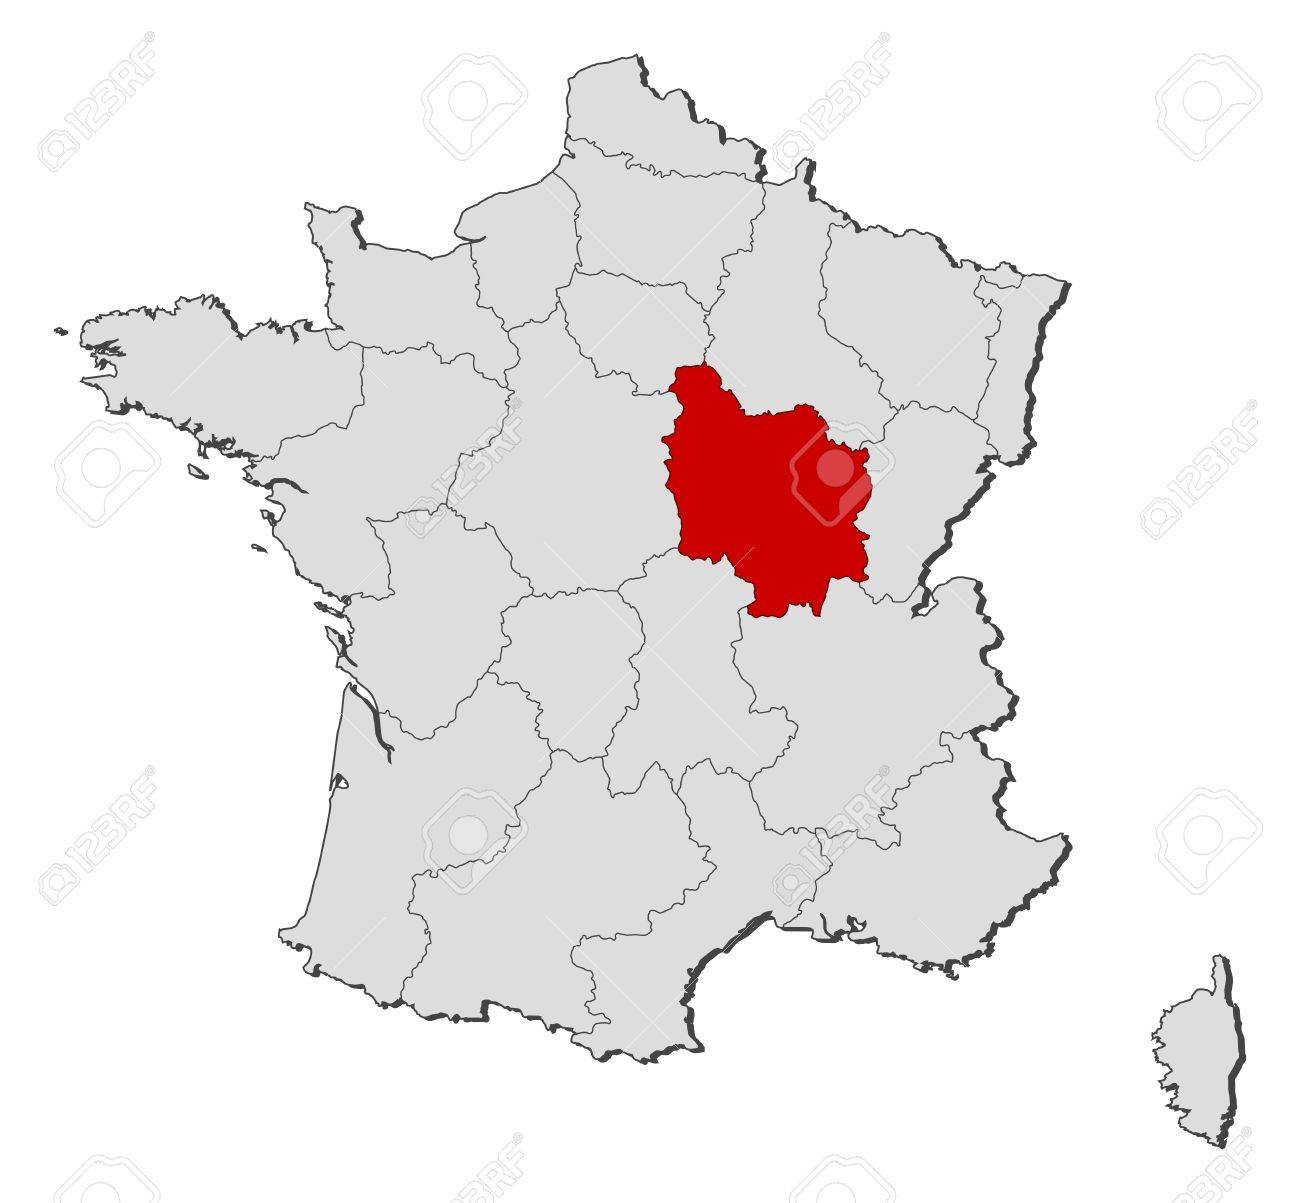 Outline Political Map Of France.Political Map Of France With The Several Regions Where Burgundy